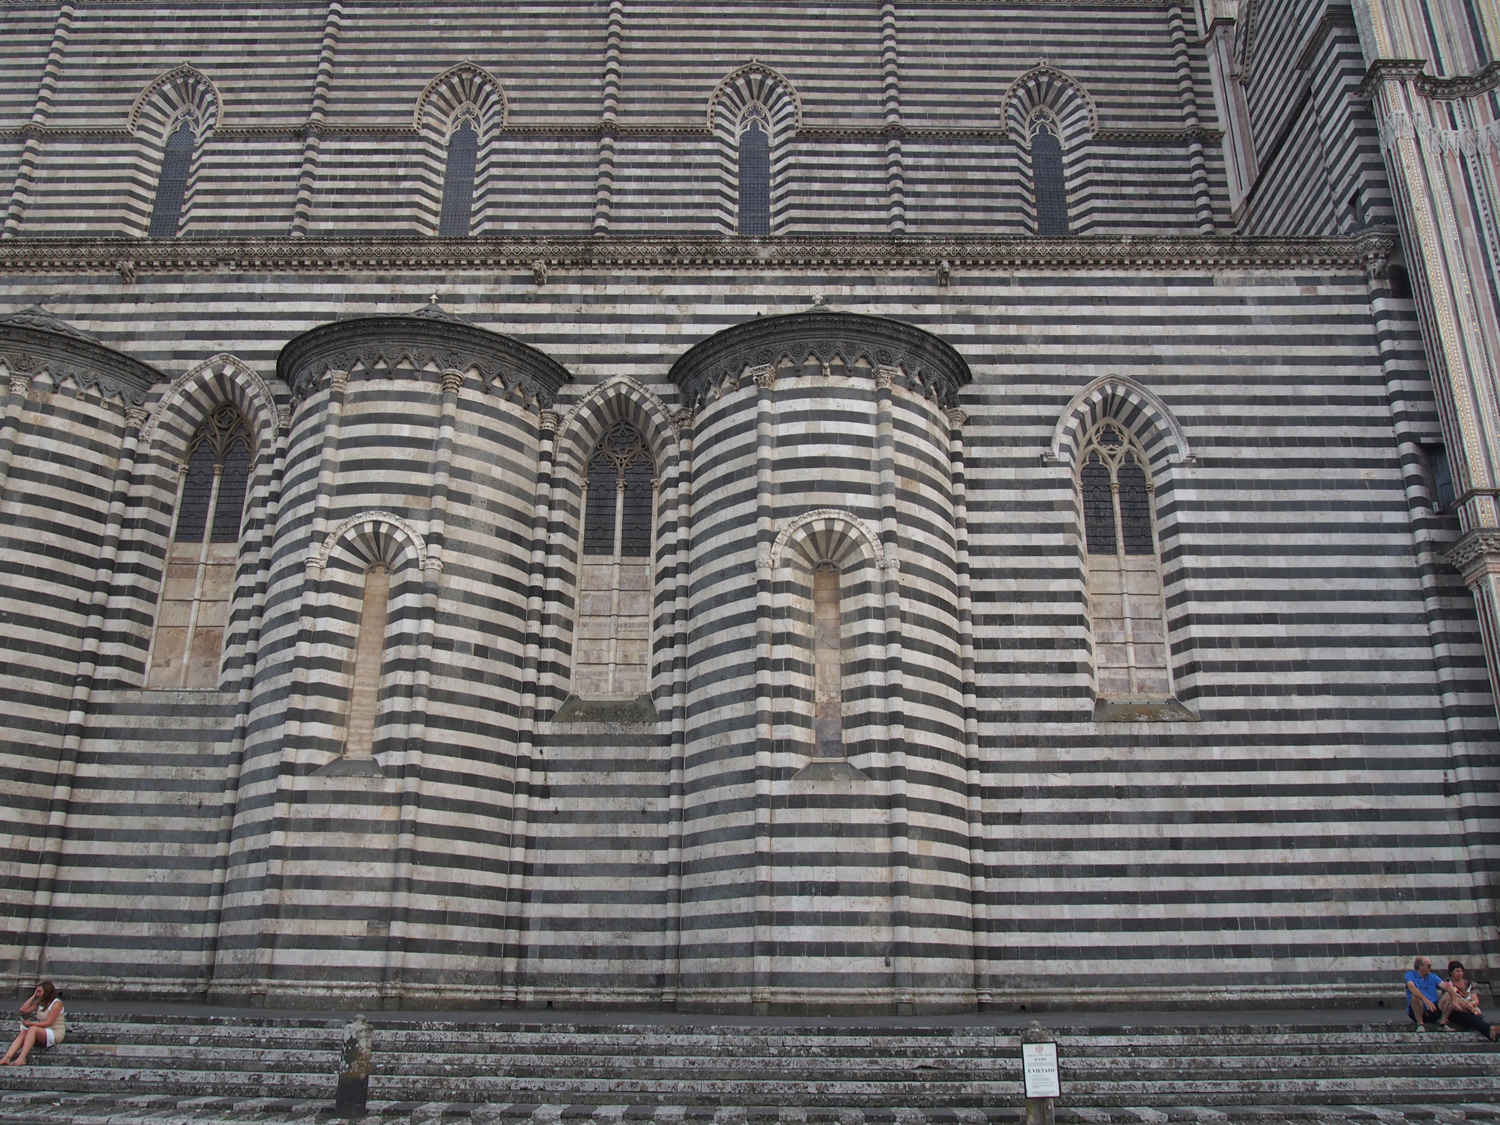 Orvieto Cathedral (14th century)